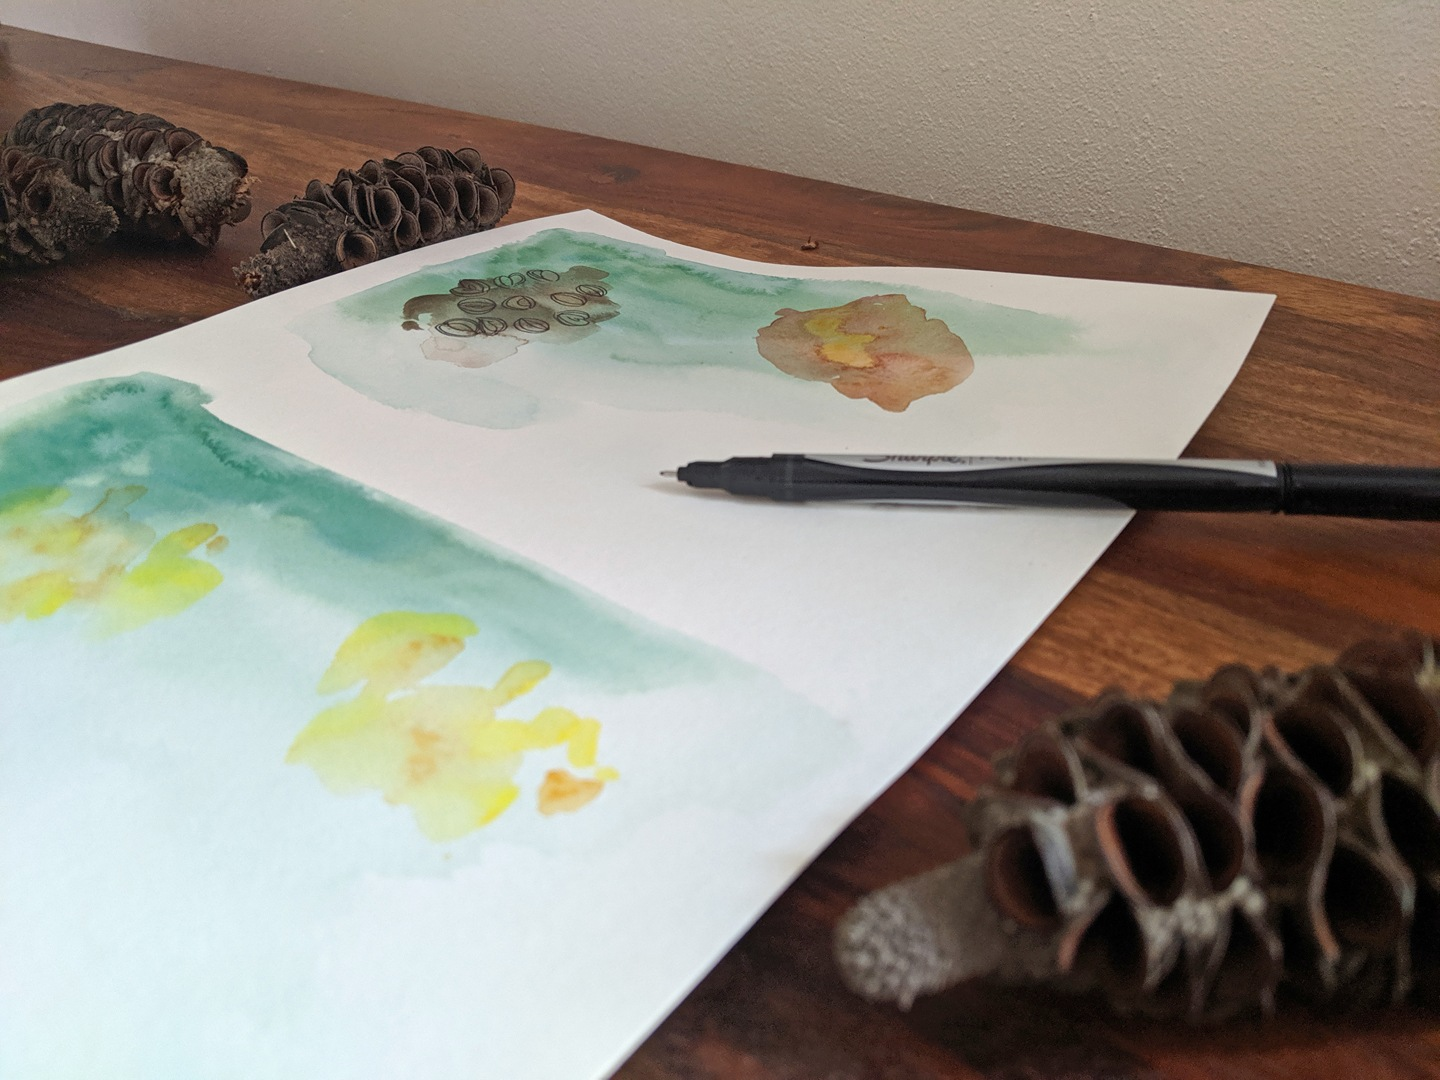 Work in progress by Kb Handmade Art; acrylic washes in neutral tones with ink details depicting the eyes of the Banksia seeds scattered on the same table